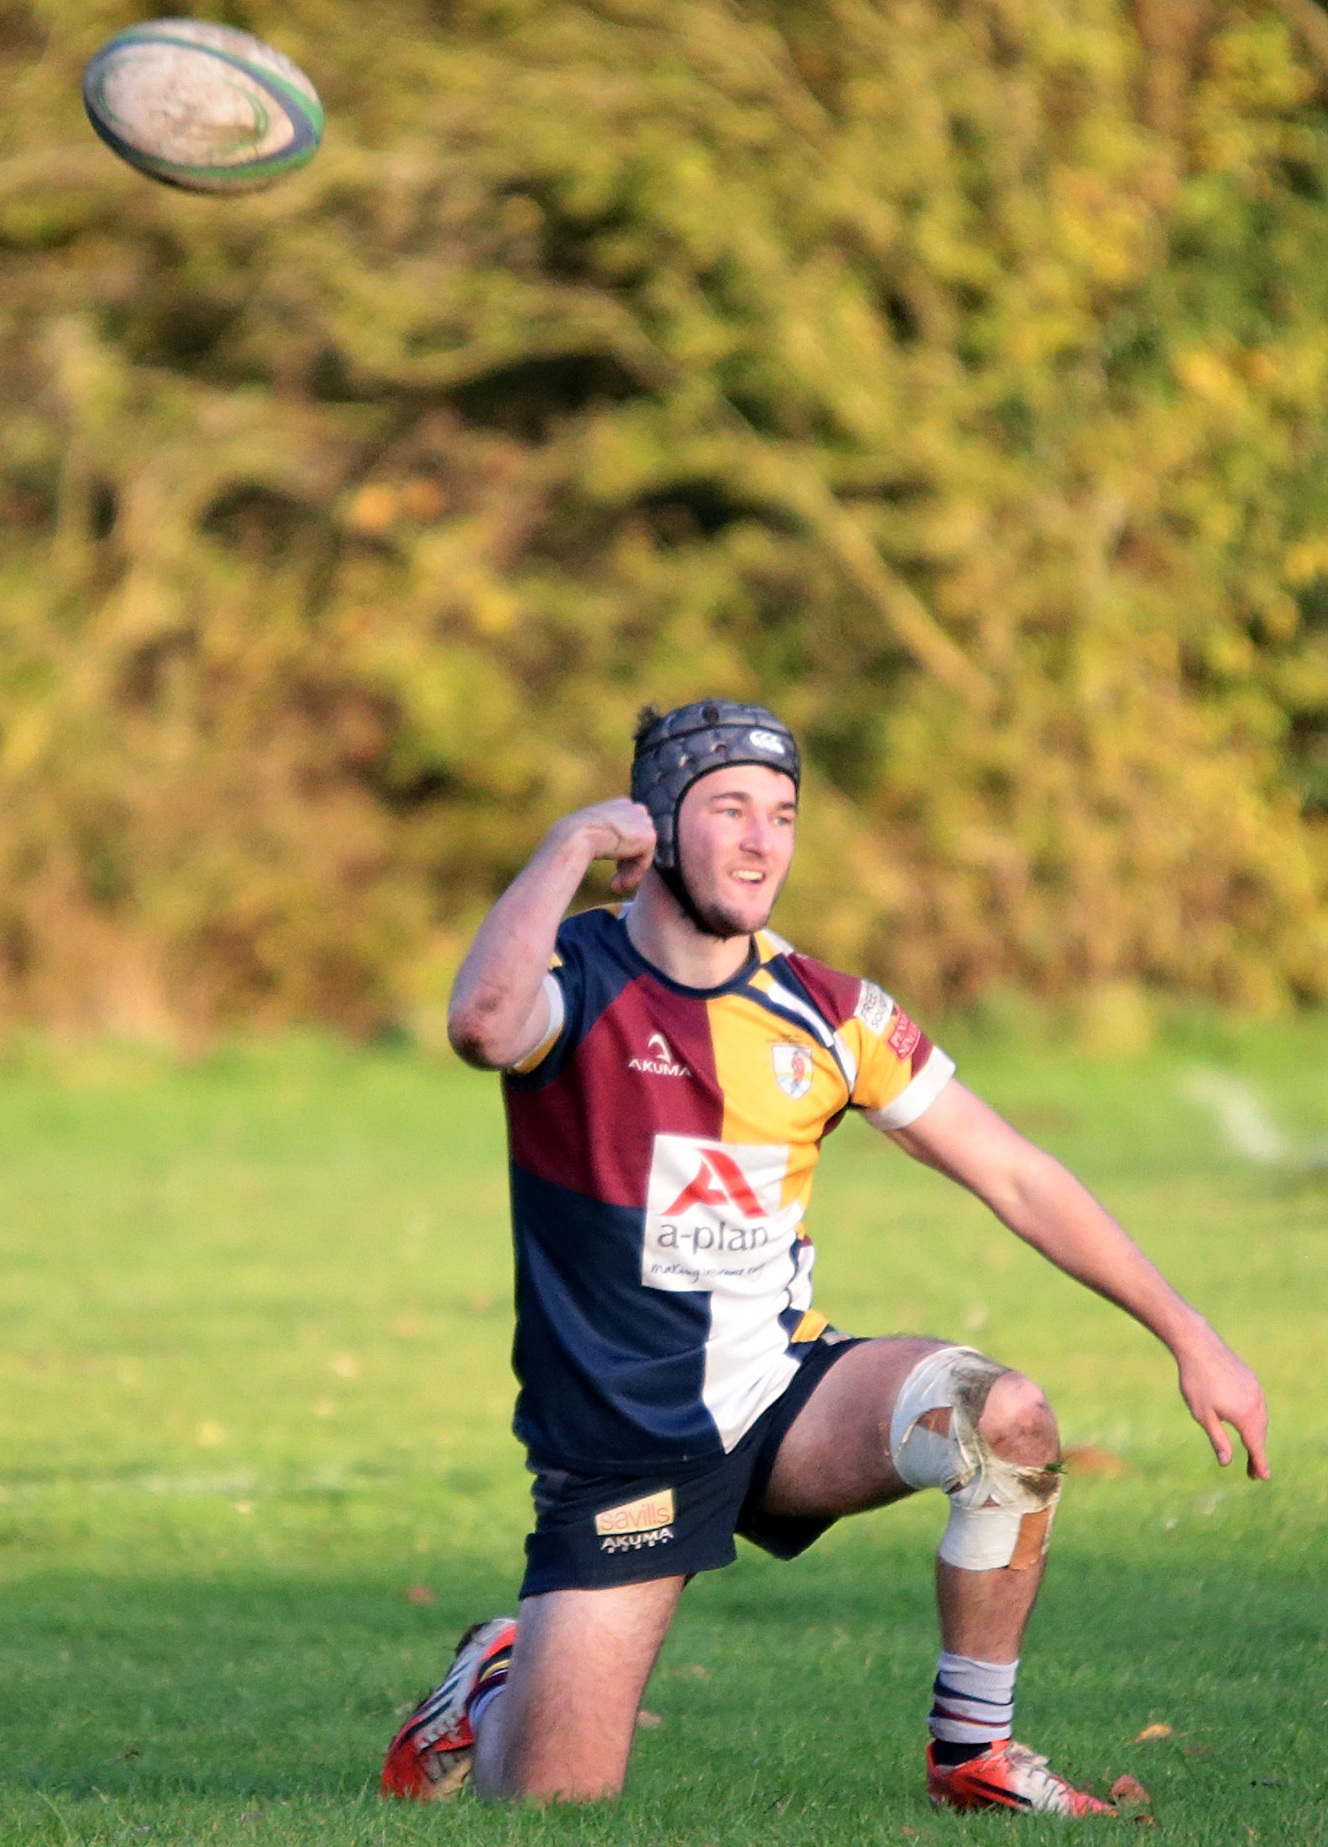 DELIGHT: Ed Yeats chucks the ball away in celebration after taking advantage of a Bicester error to run in Oxford Harlequins' final try in their 20-7 victory Picture: Ric Mellis